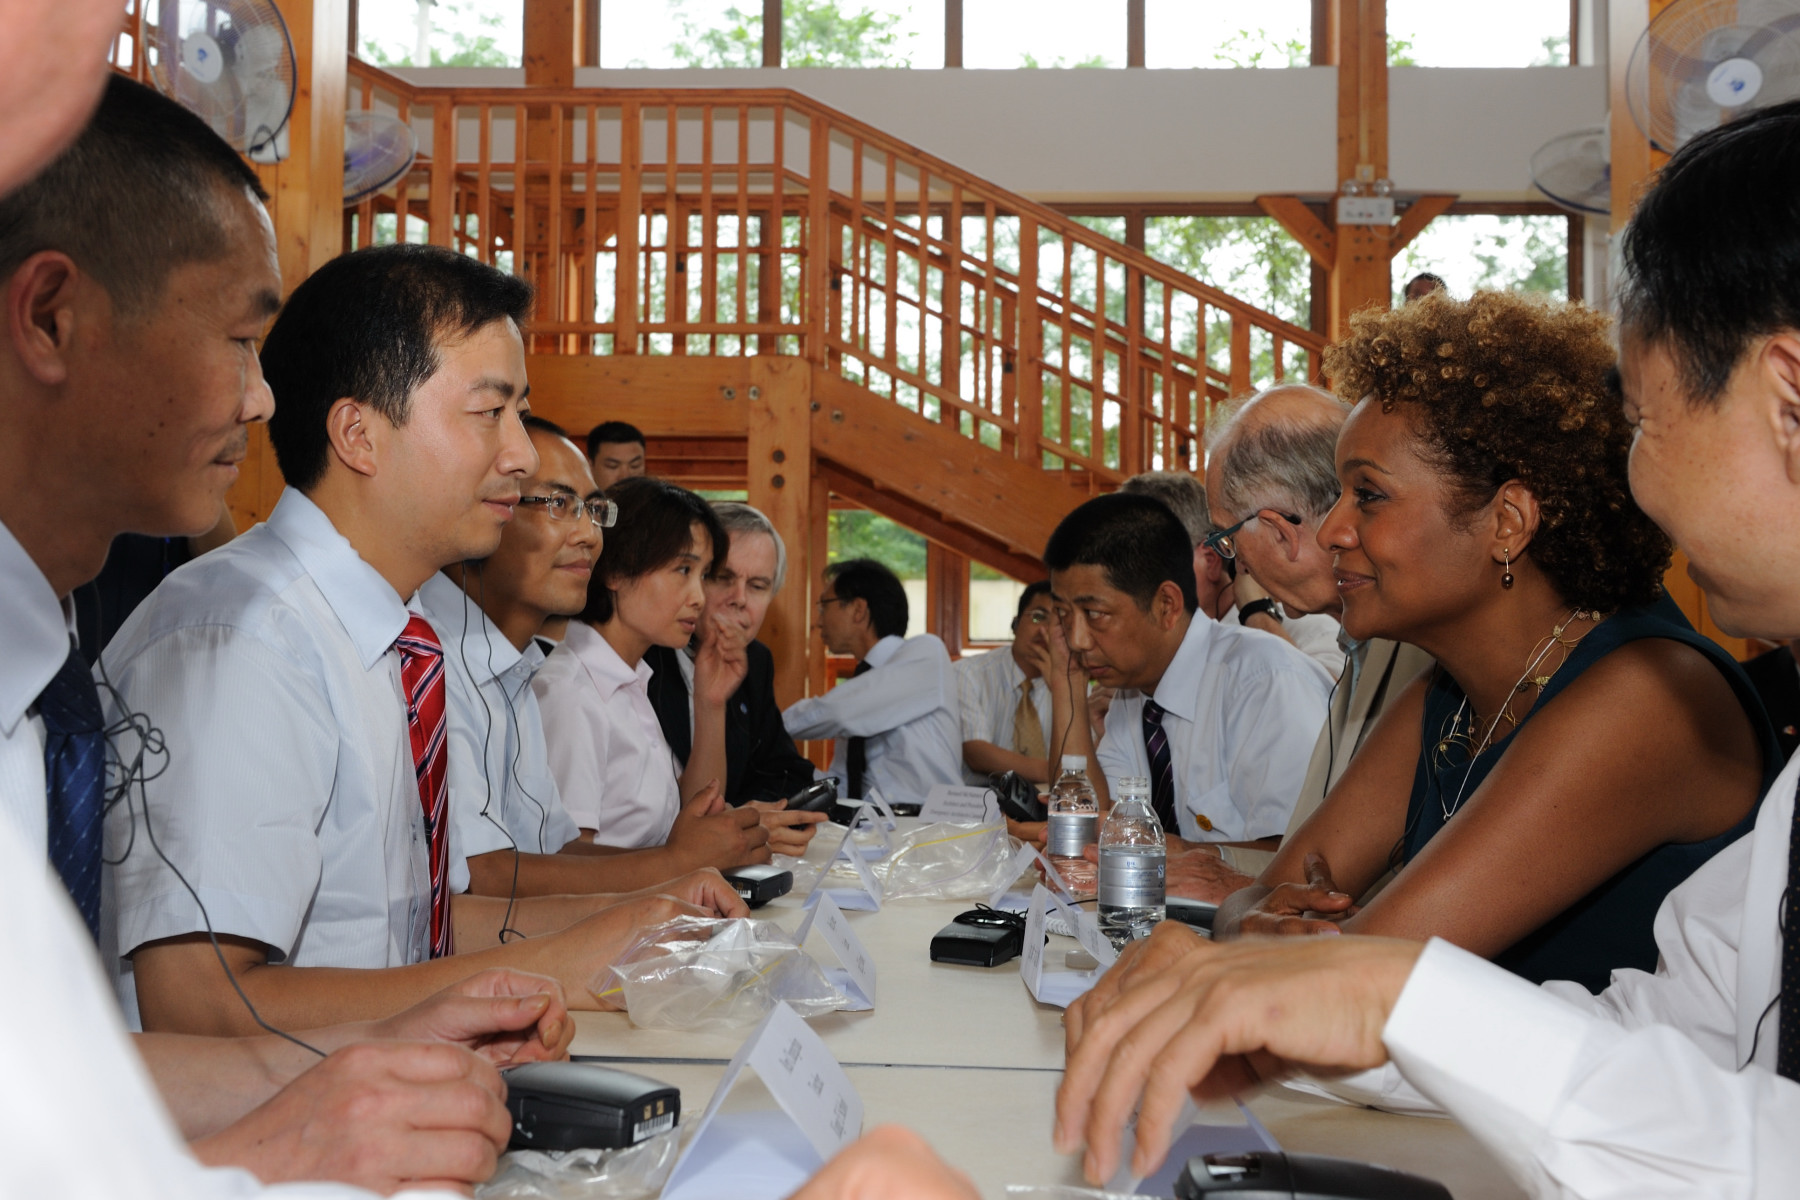 The visit was also an opportunity to meet some students, and teachers at the school.